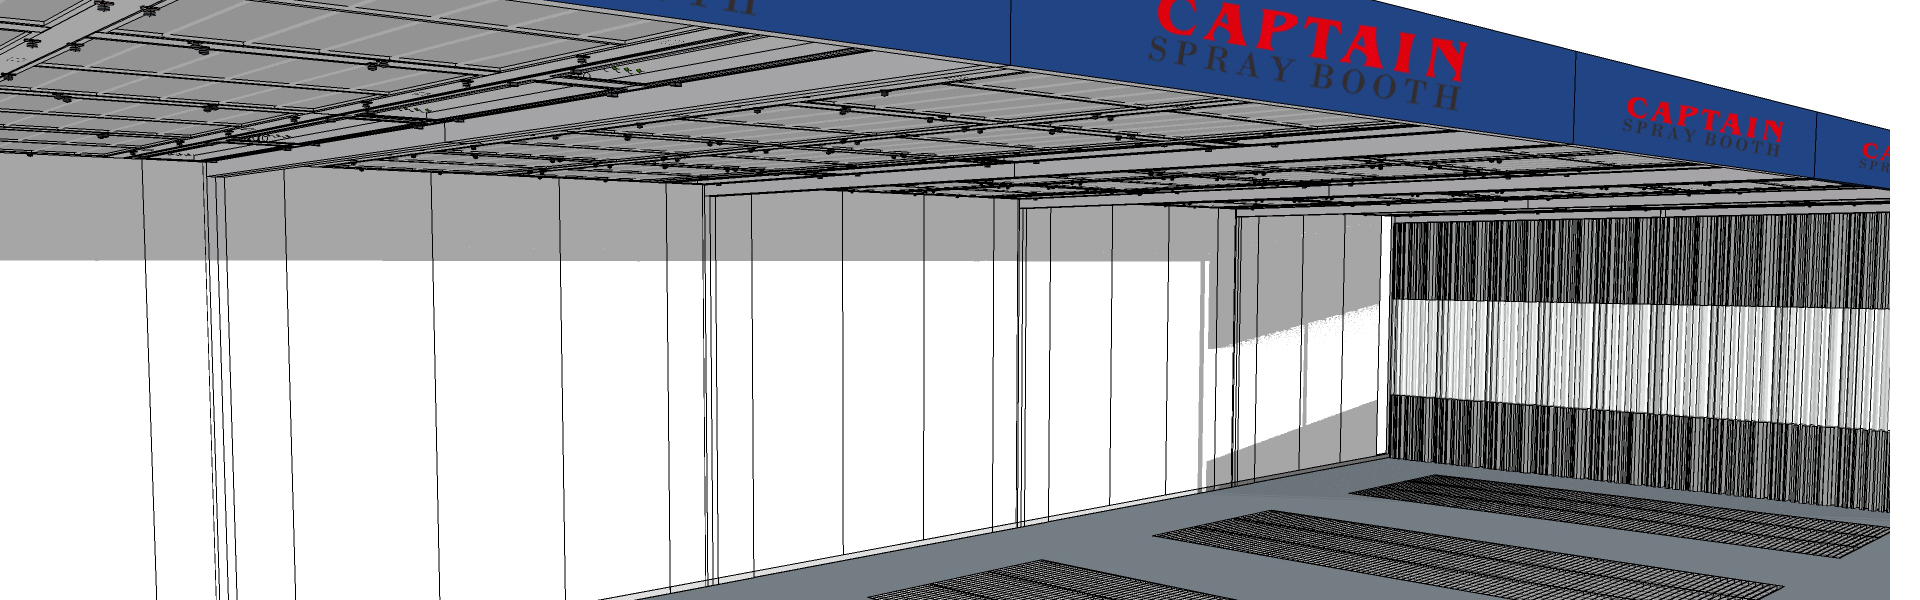 Rooms: Automotive Spray Booths, Commercial Vehicle Spray Booths